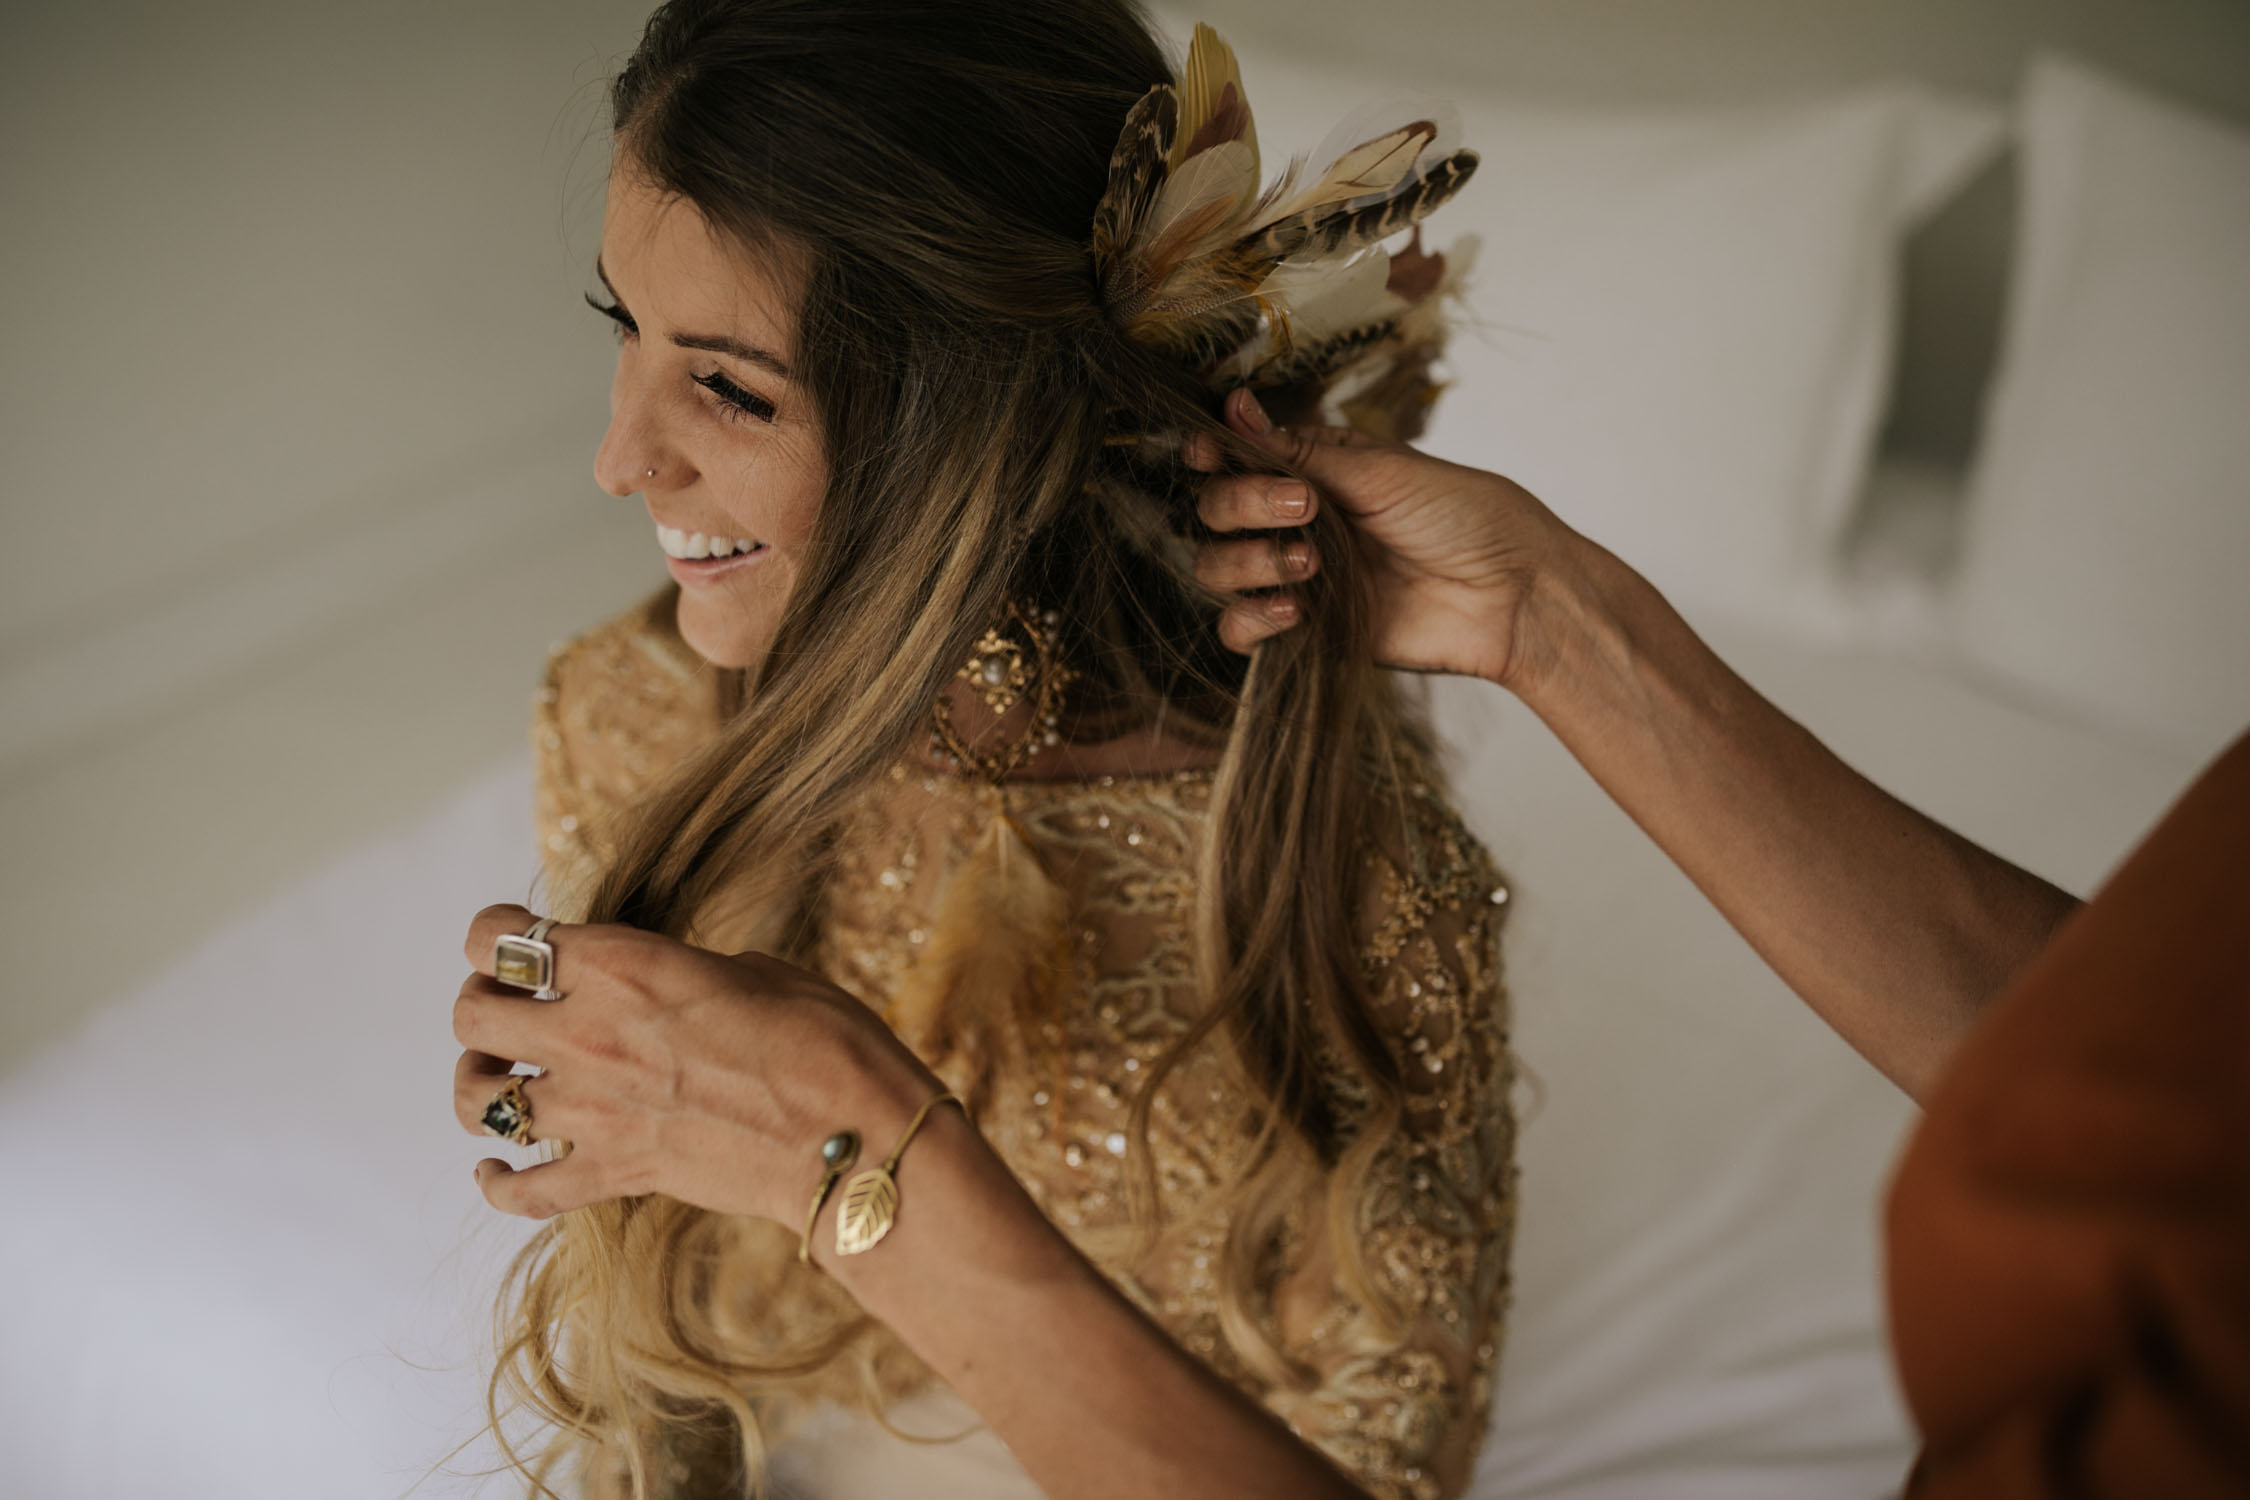 Bohemian bride with long curly blonde hair wearing gold detail long sleeve wedding dress puts on feather ear cuff